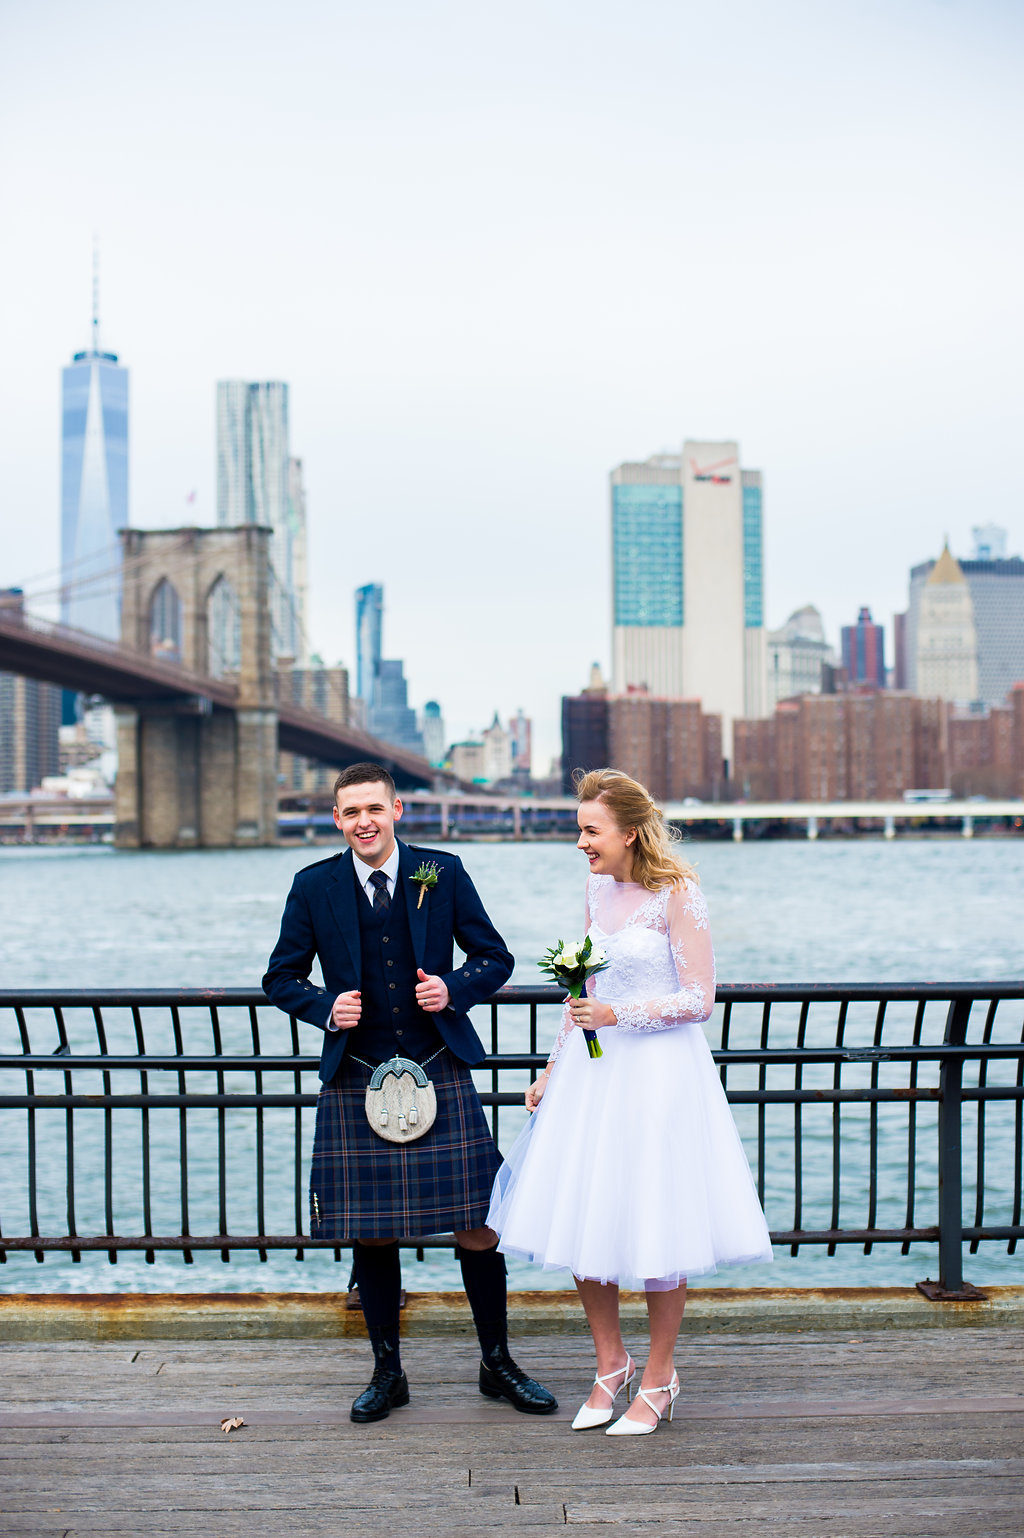 This Scottish pair travelled to New York for their destination wedding.